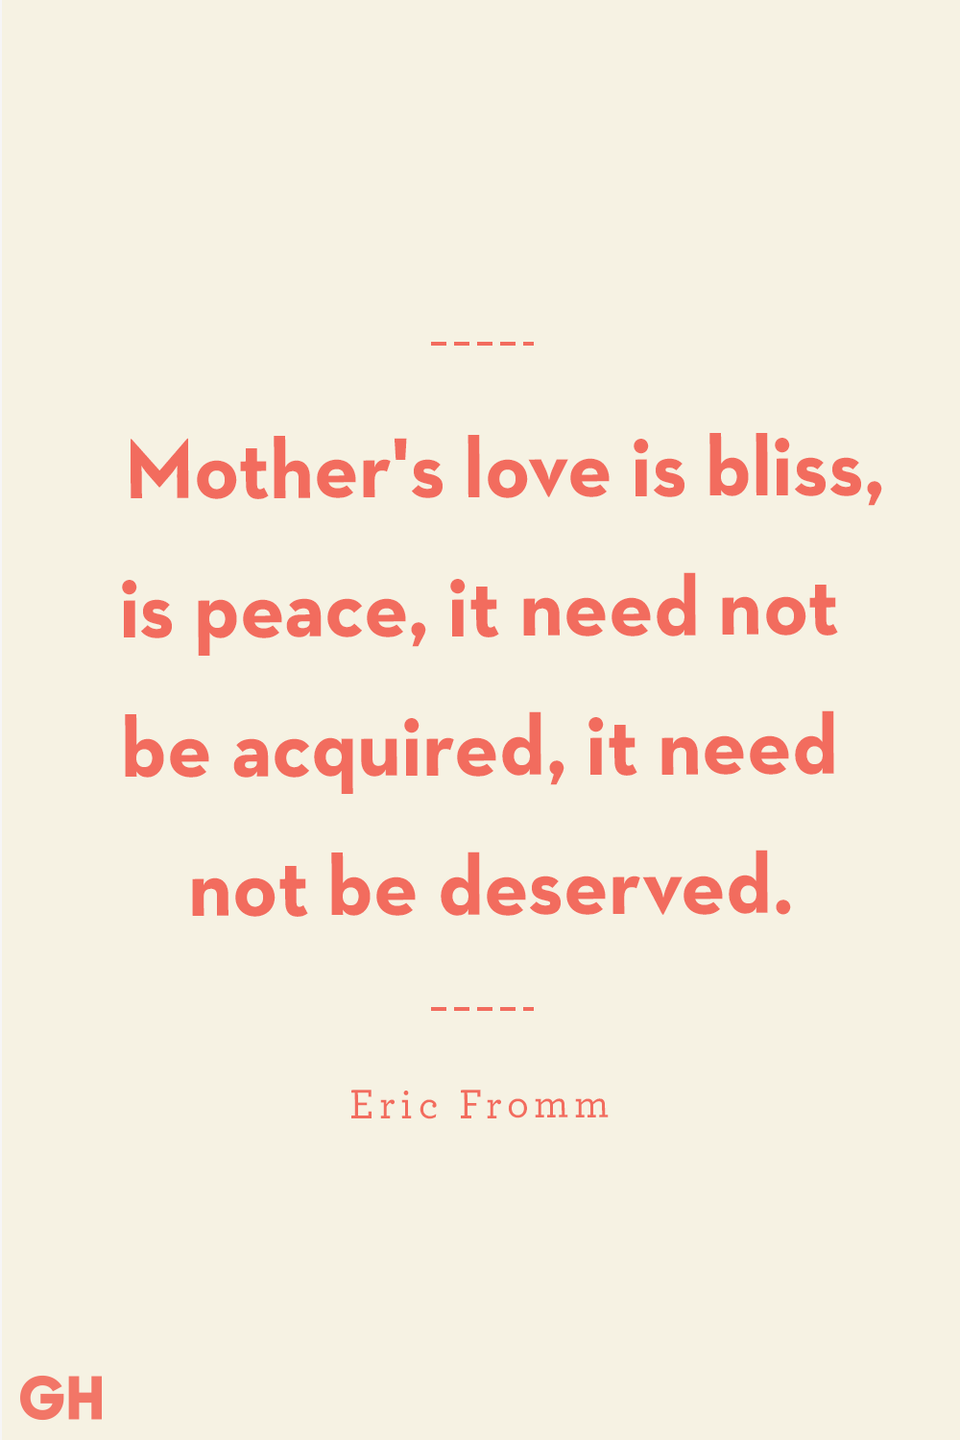 <p>Mother's love is bliss, is peace, it need not be acquired, it need not be deserved.</p>